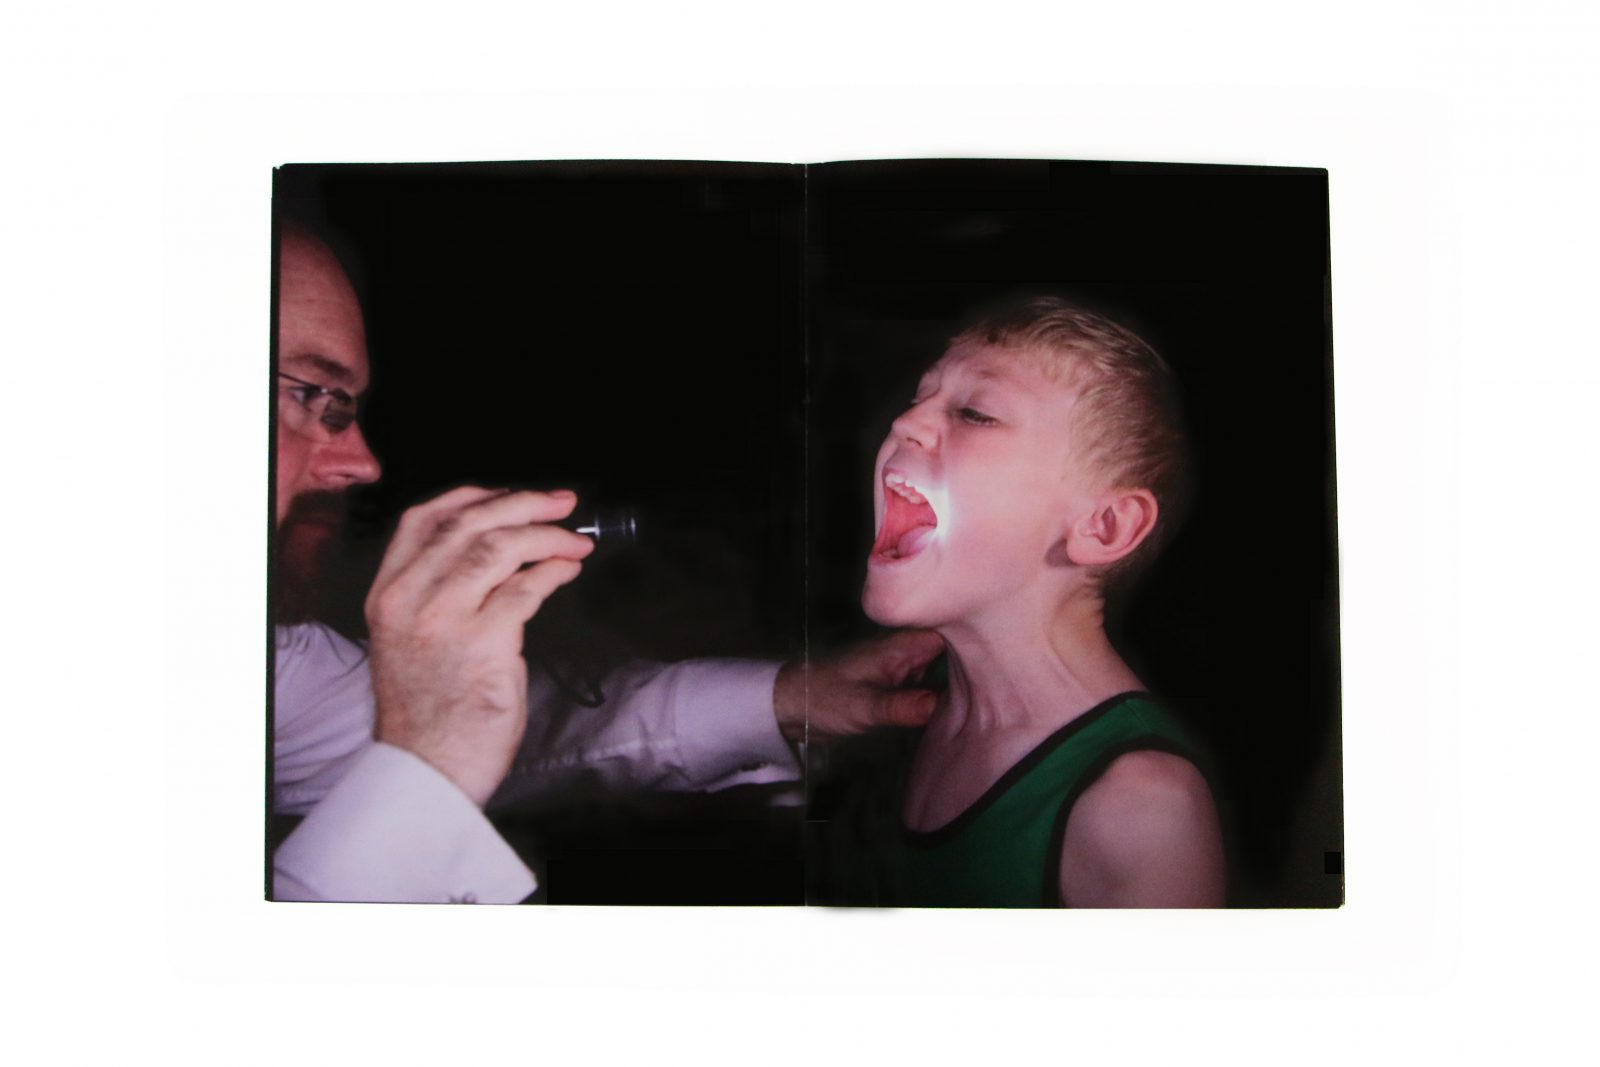 A man points a torch in to a young persons mouth.